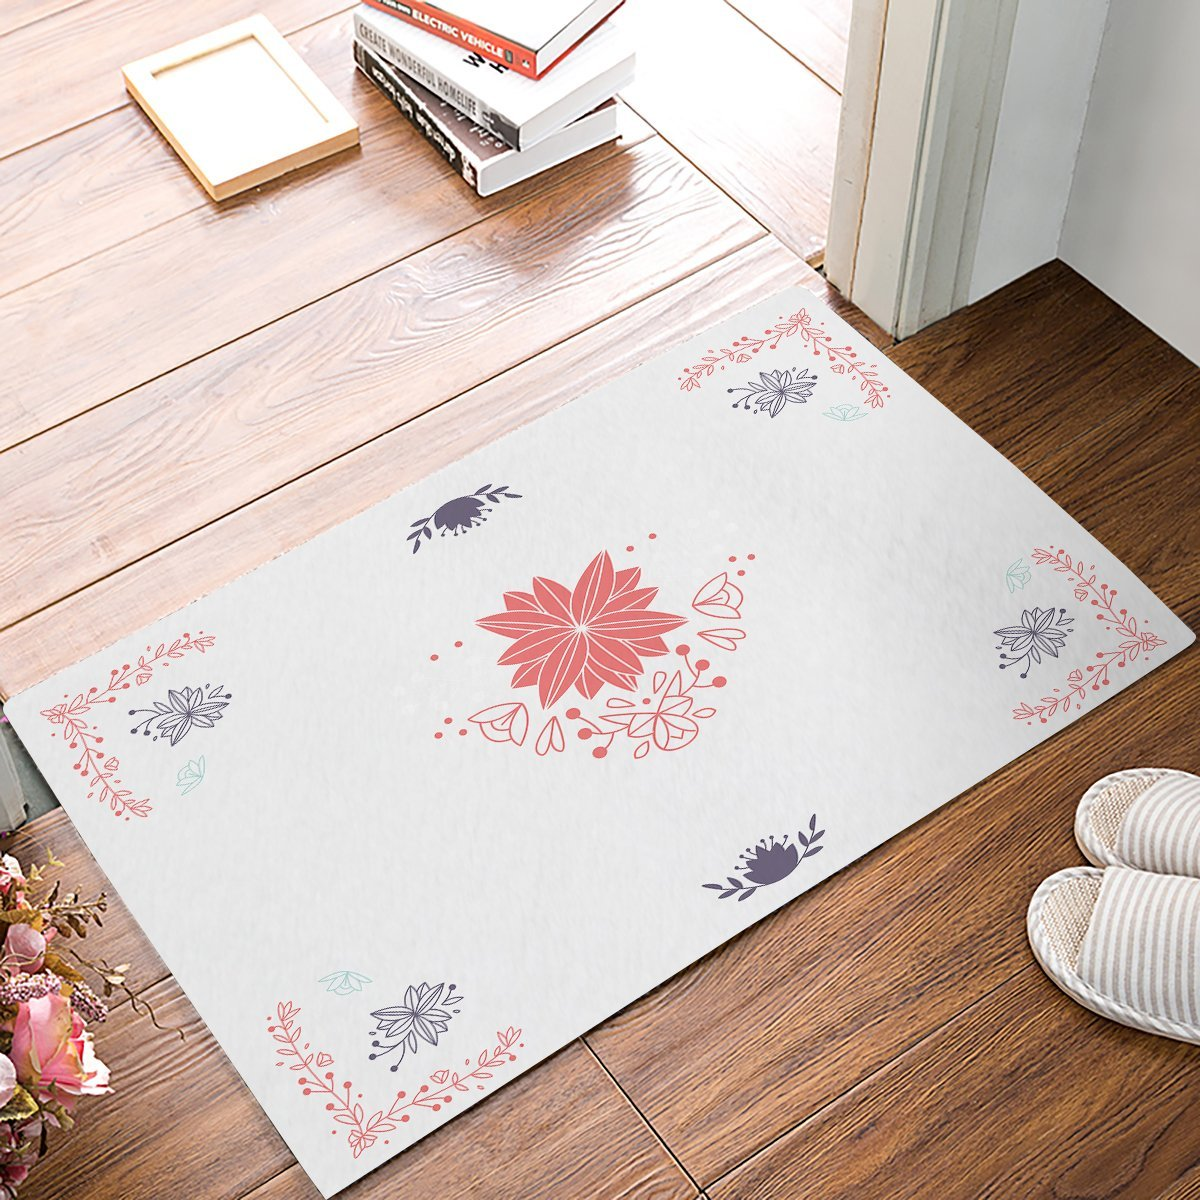 Simple Vintage Floral Print Light Pink Door Mats Kitchen Floor Bath Entrance Rug Mat Absorbent Indoor Bathroom